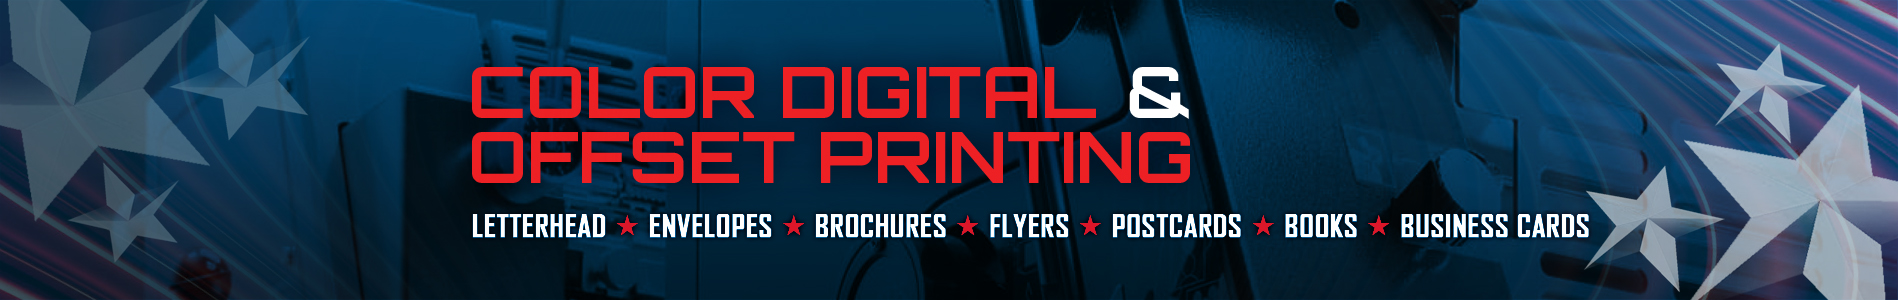 Digital Color Printing - Letterhead & Envelopes - Brochures - Flyers - Postcards - Books - Magazines | Colorado Springs, Colorado - Copy, Print and Design